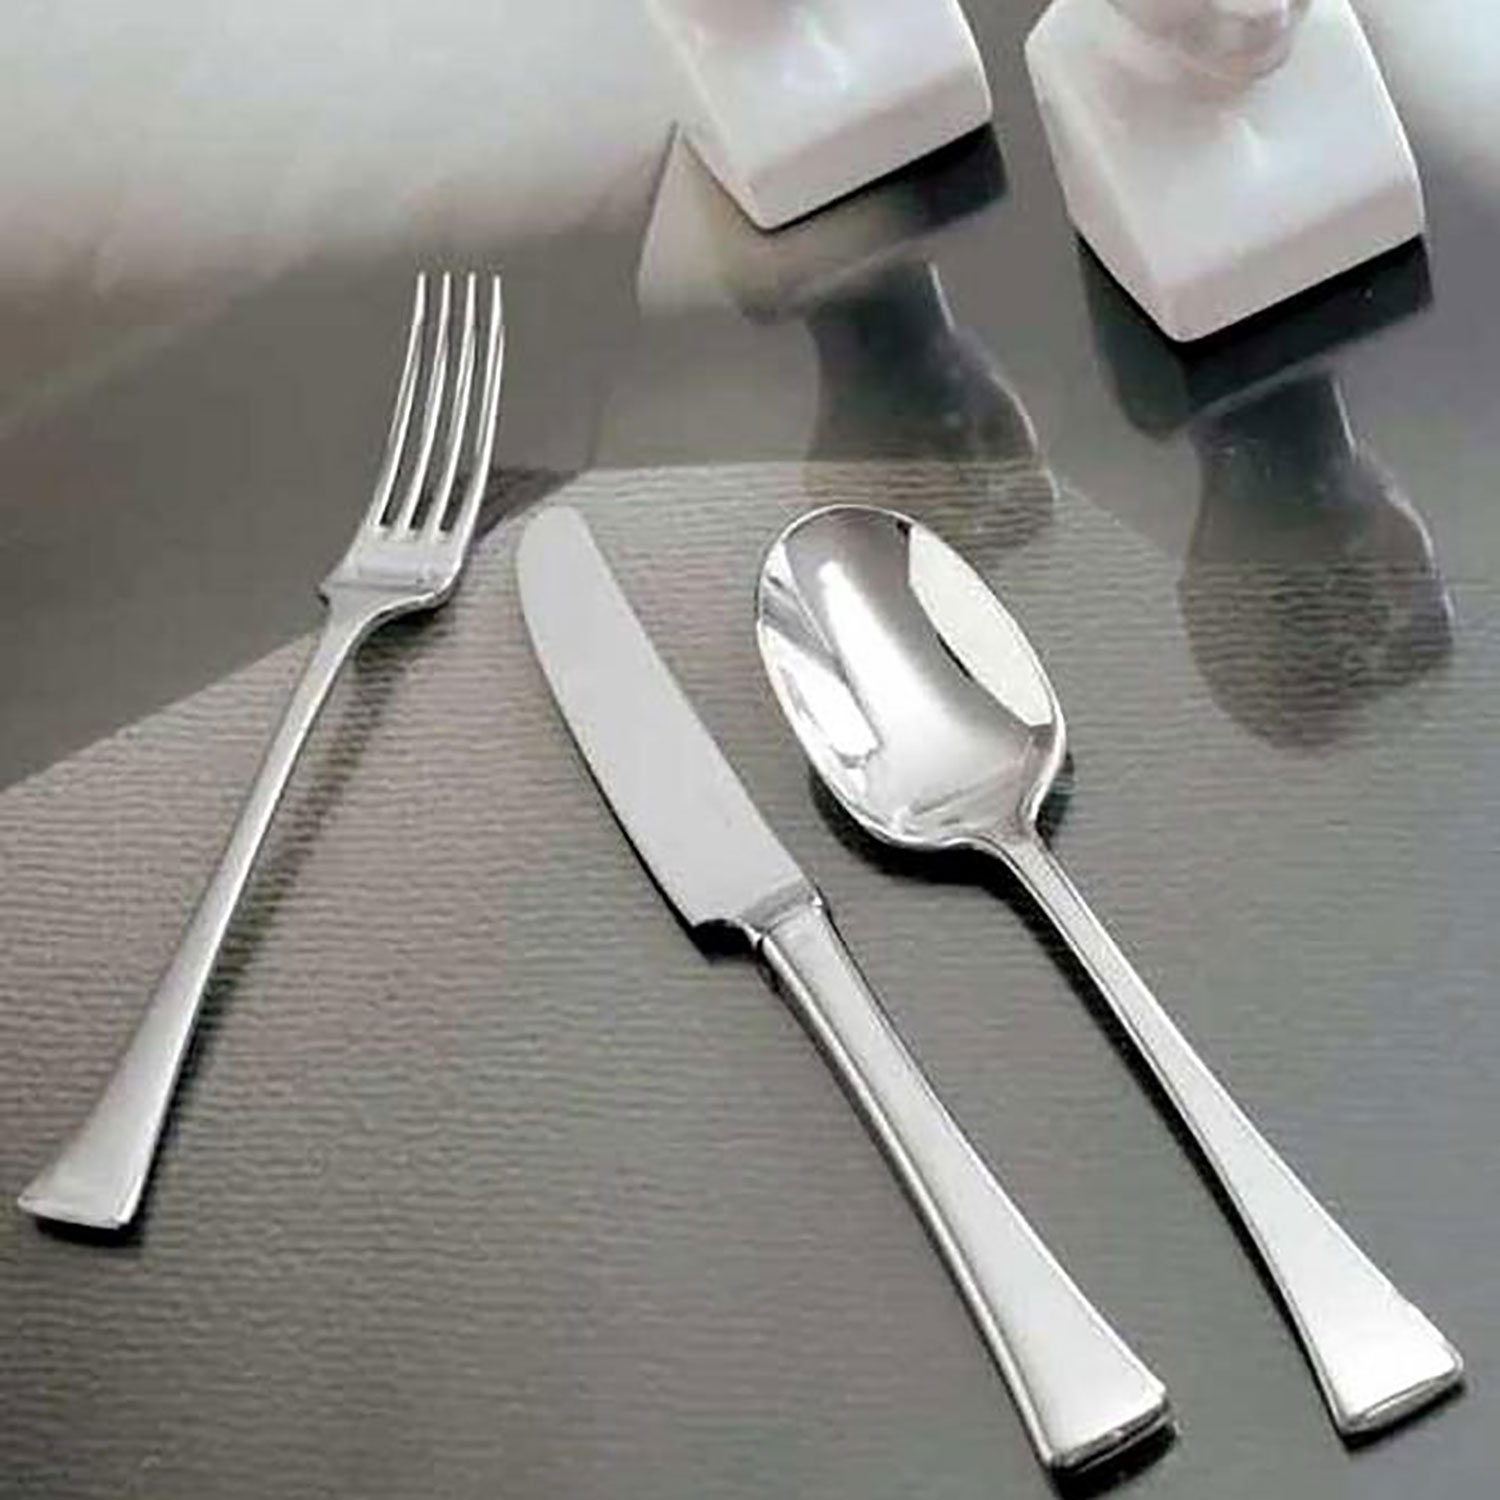 5 Piece Place Setting - Large Spoon/Serrated Knife